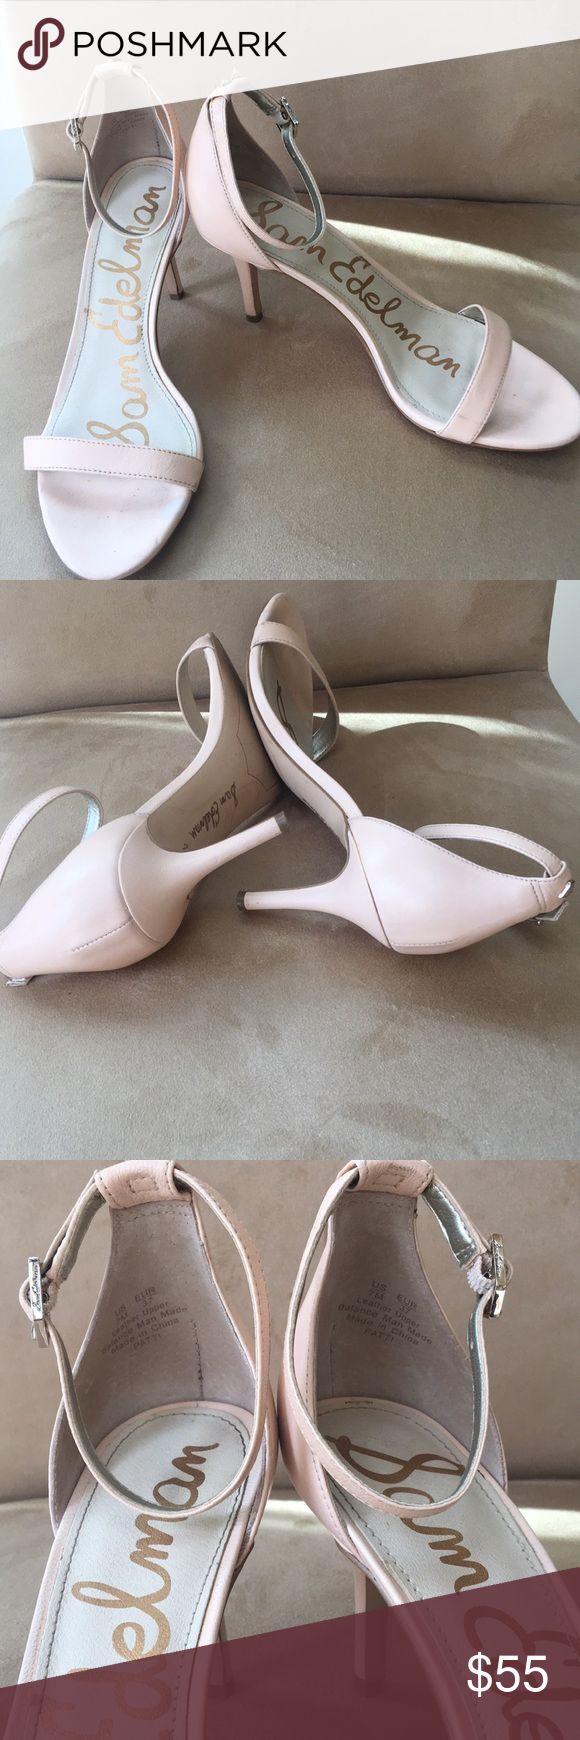 7e30b9b1fd3 Sam Edelman Leather Patti sandals Sam Edelman patti ankle strap sandals. 3  inch heels. Used but in good condition. Nude color which matches with any  outfit.